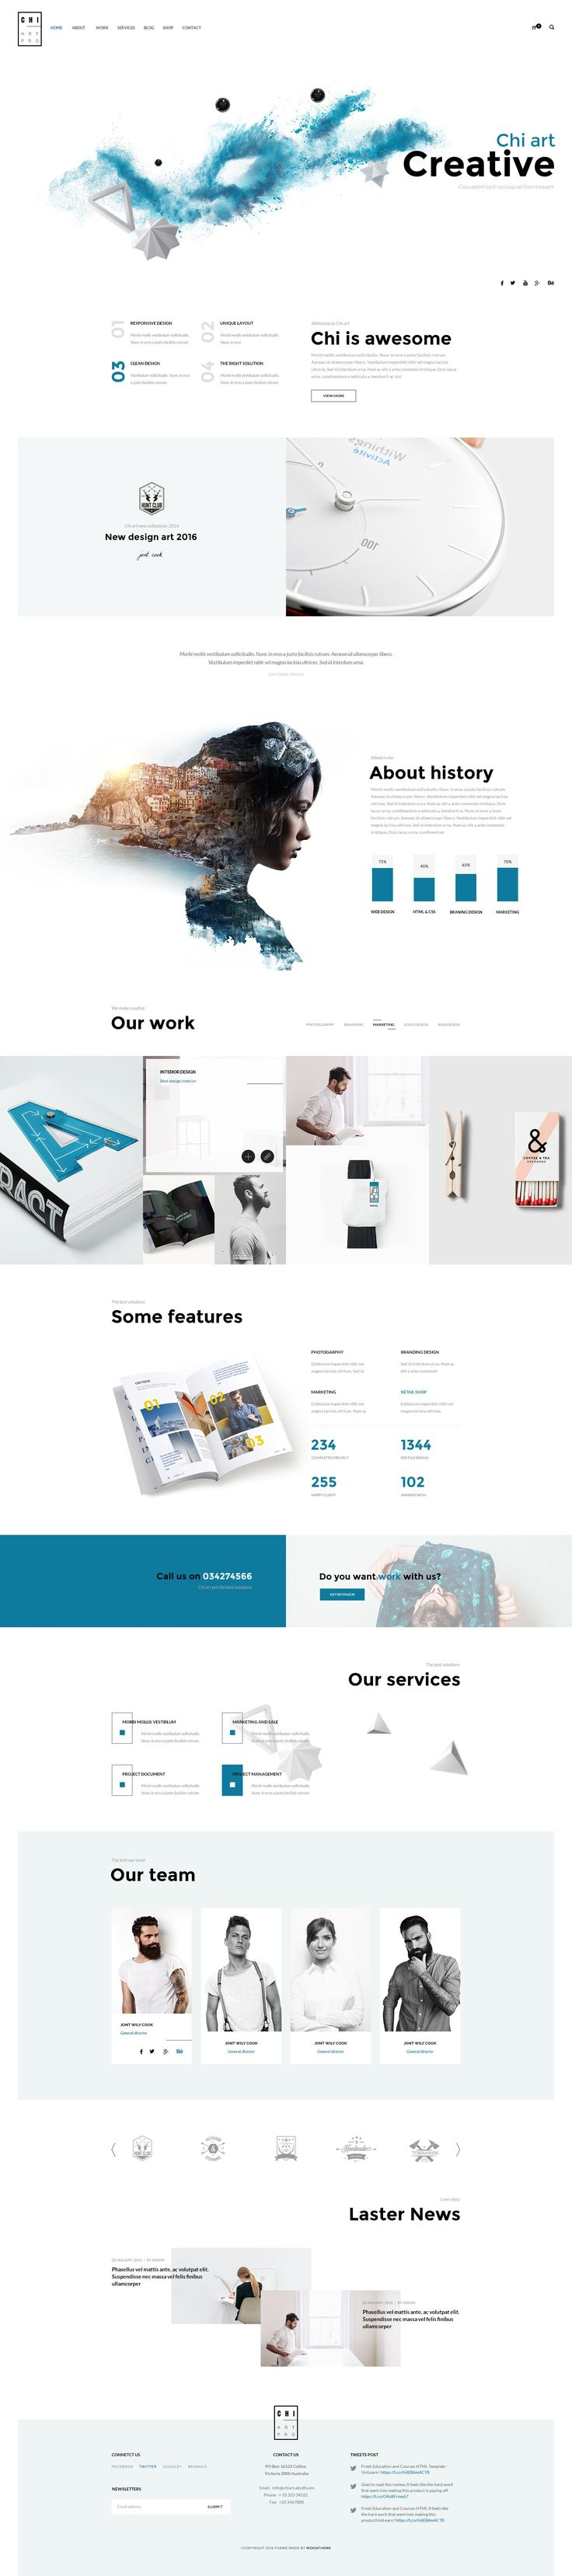 """""""CHI – Multipurpose PSD Template"""" is modern, clean, multiple functions and professionally design web theme. It has 29 homepage layouts and 13 Online store layout Options! This template suits for any type of portfolio, creative, corporate, agency, bussines, design studio, fashions, photography, gallery photo, architecture, interior, Blog, shopping and more. #webdesign #psdtemplate #startups Download Now➝ http://themeforest.net/item/chi-multipurpose-psd-template/15219685?ref=Datasata"""